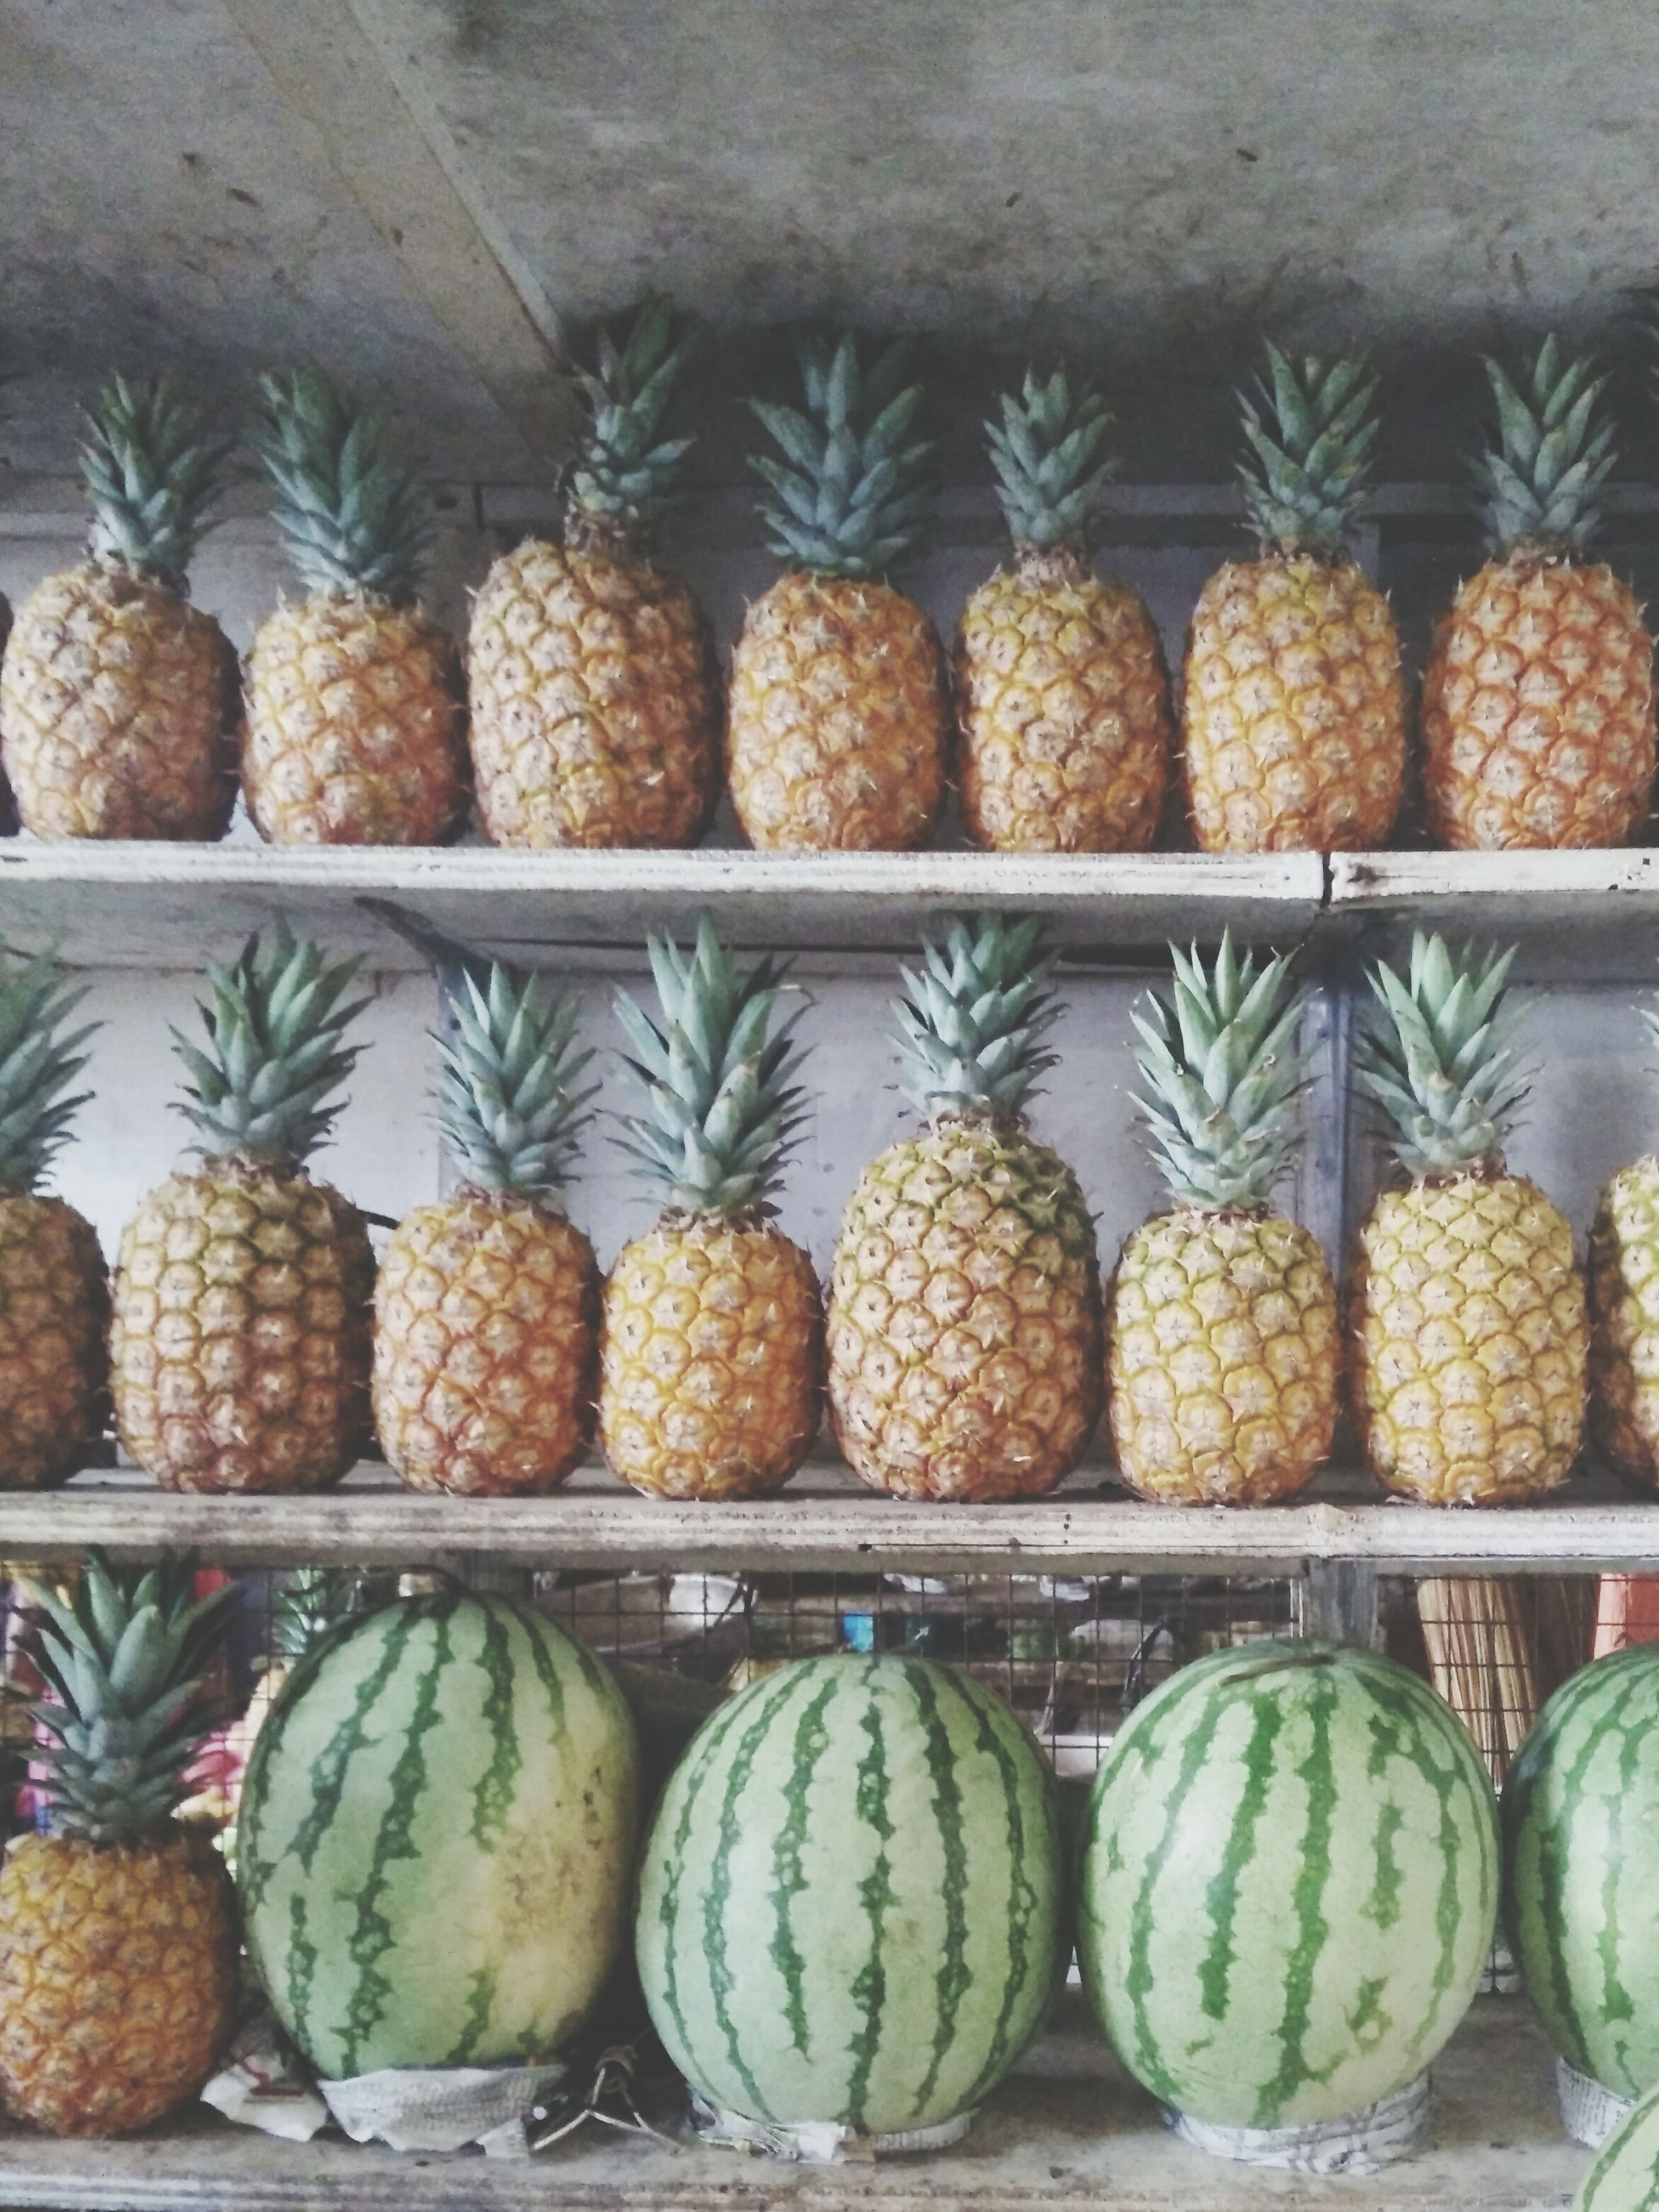 food and drink, food, for sale, abundance, large group of objects, healthy eating, retail, freshness, market, market stall, choice, variation, arrangement, fruit, display, in a row, order, still life, indoors, repetition